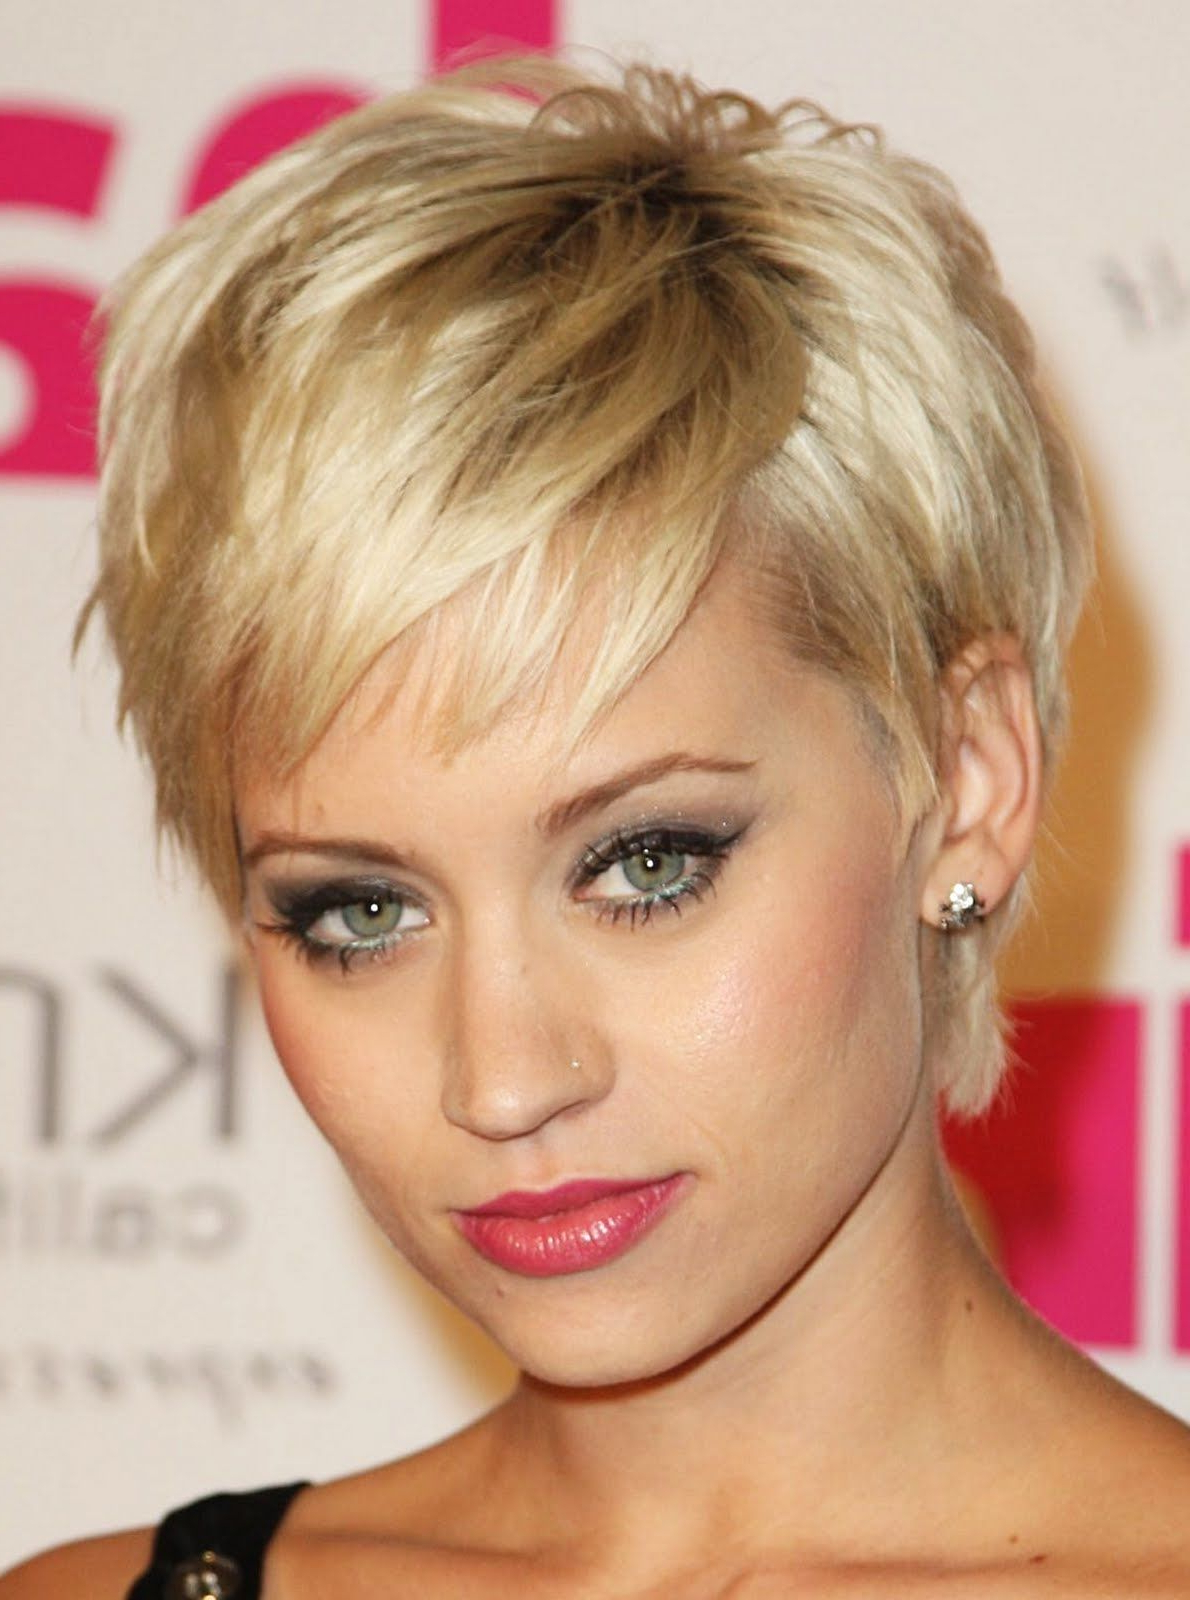 Short Hairstyles For Oval Faces | Hair Cut | Pinterest | Short Hair With Regard To Short Hairstyles For Thin Fine Hair And Round Face (View 5 of 25)